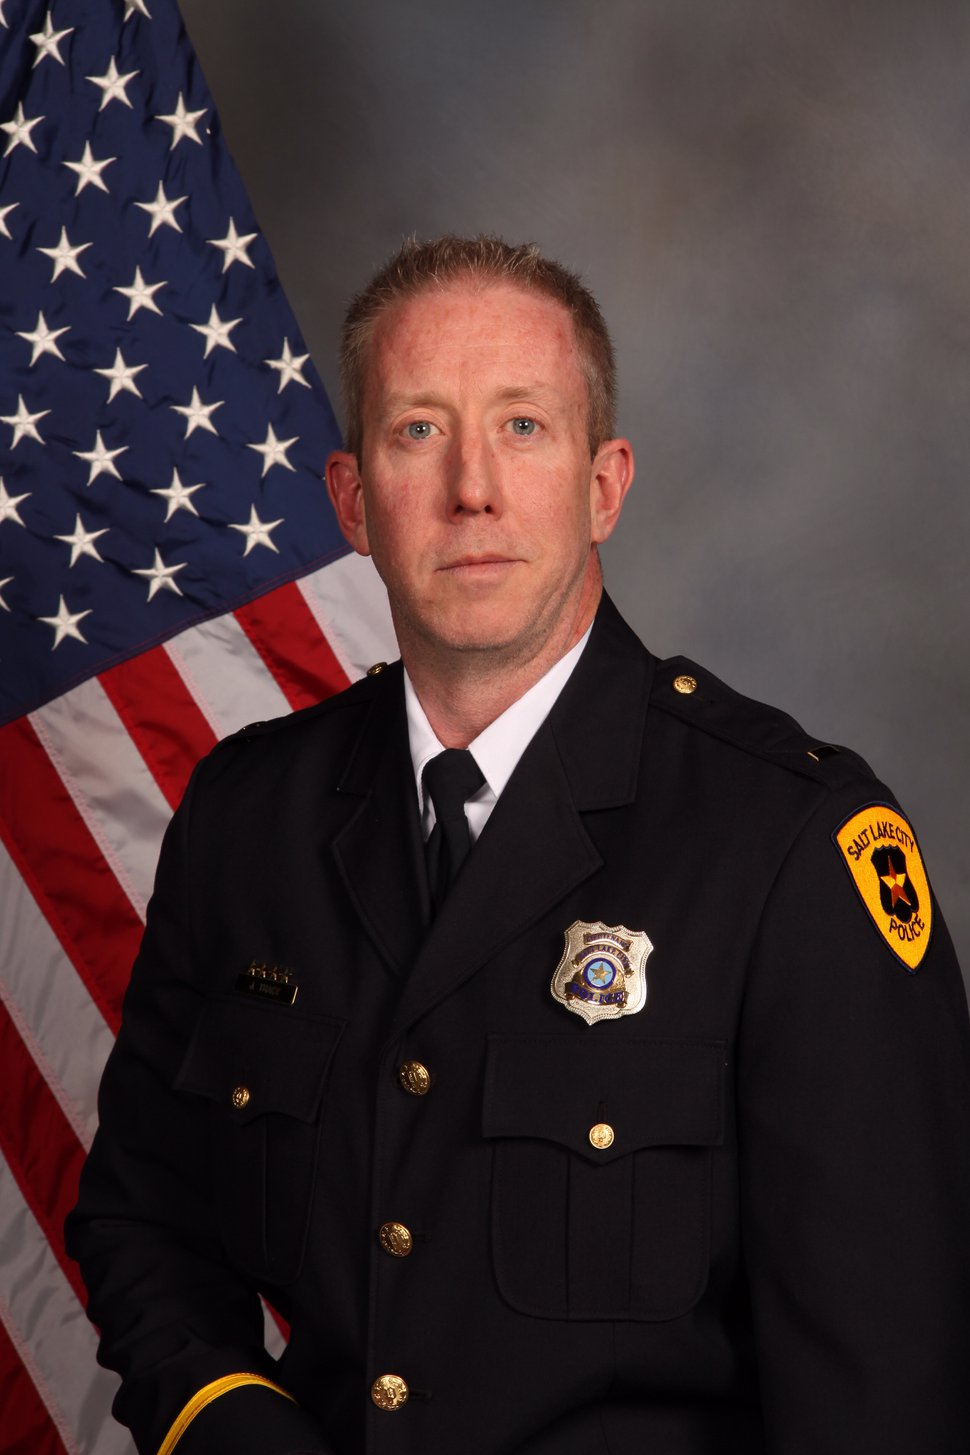 (Courtesy of Salt Lake City Police Department) Salt Lake City police Lt. James Tracy